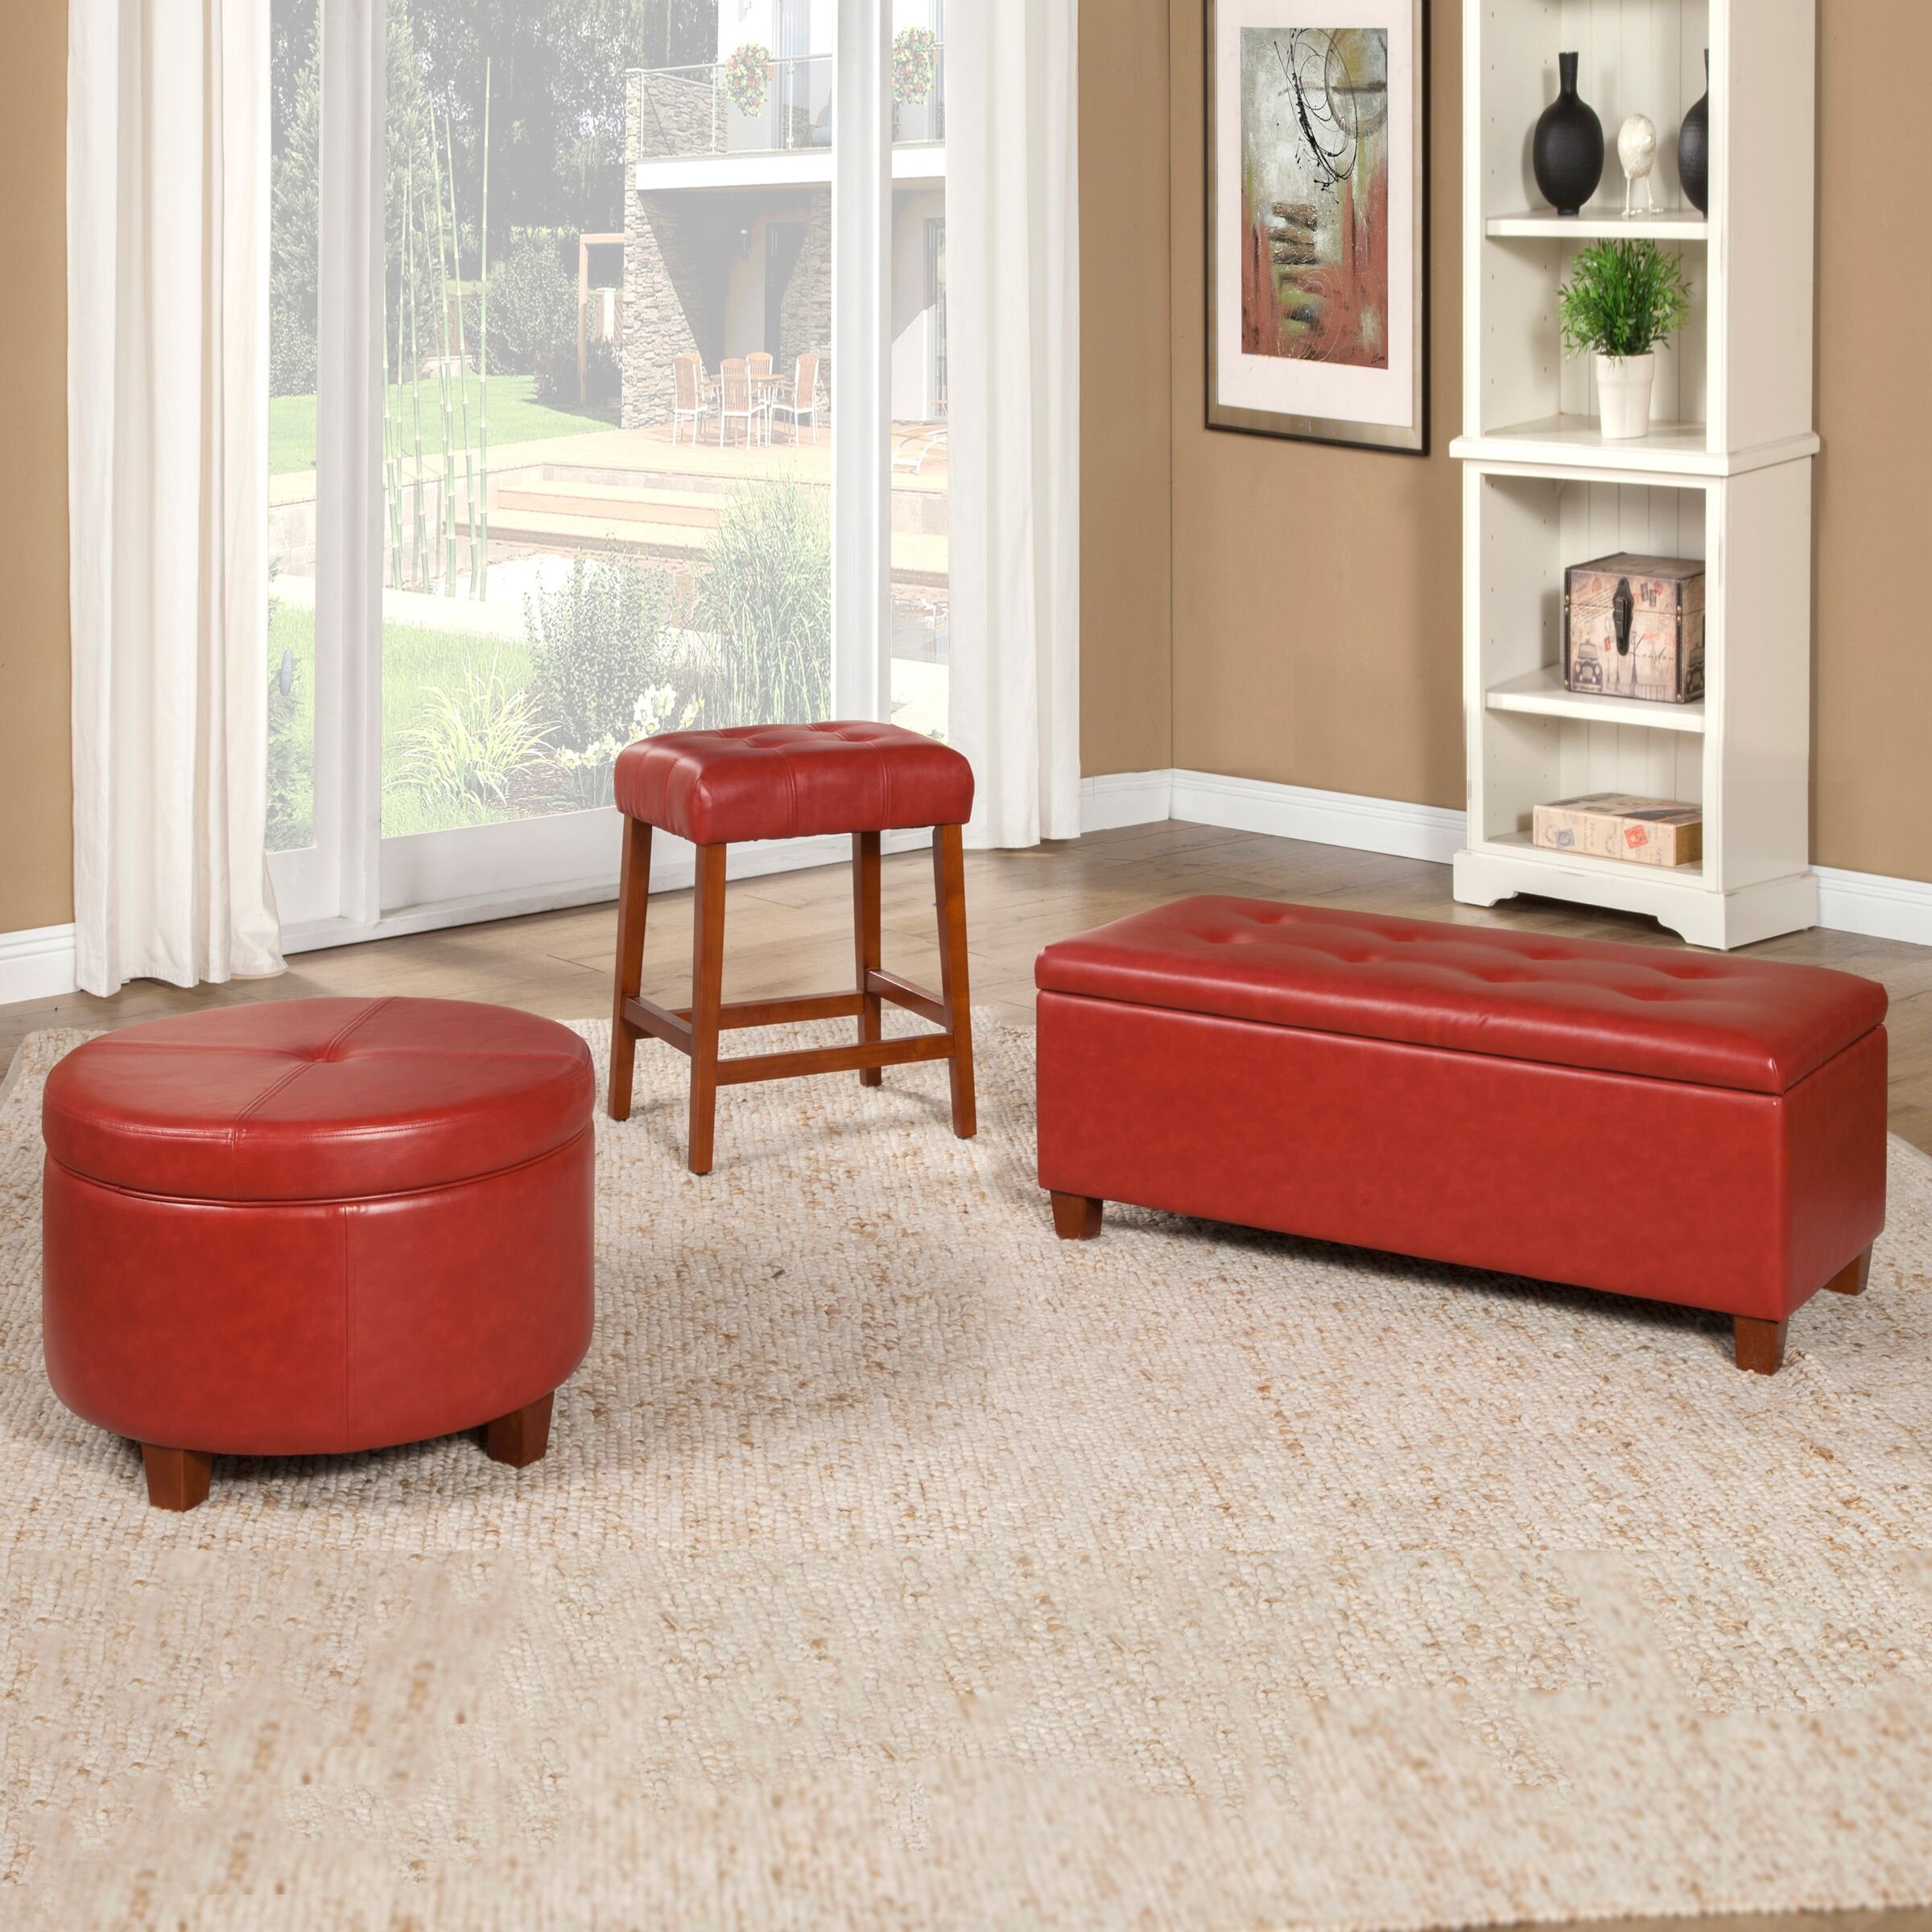 HomePop Leatherette Square Tufted Counter Height Stool, Cinnamon Red